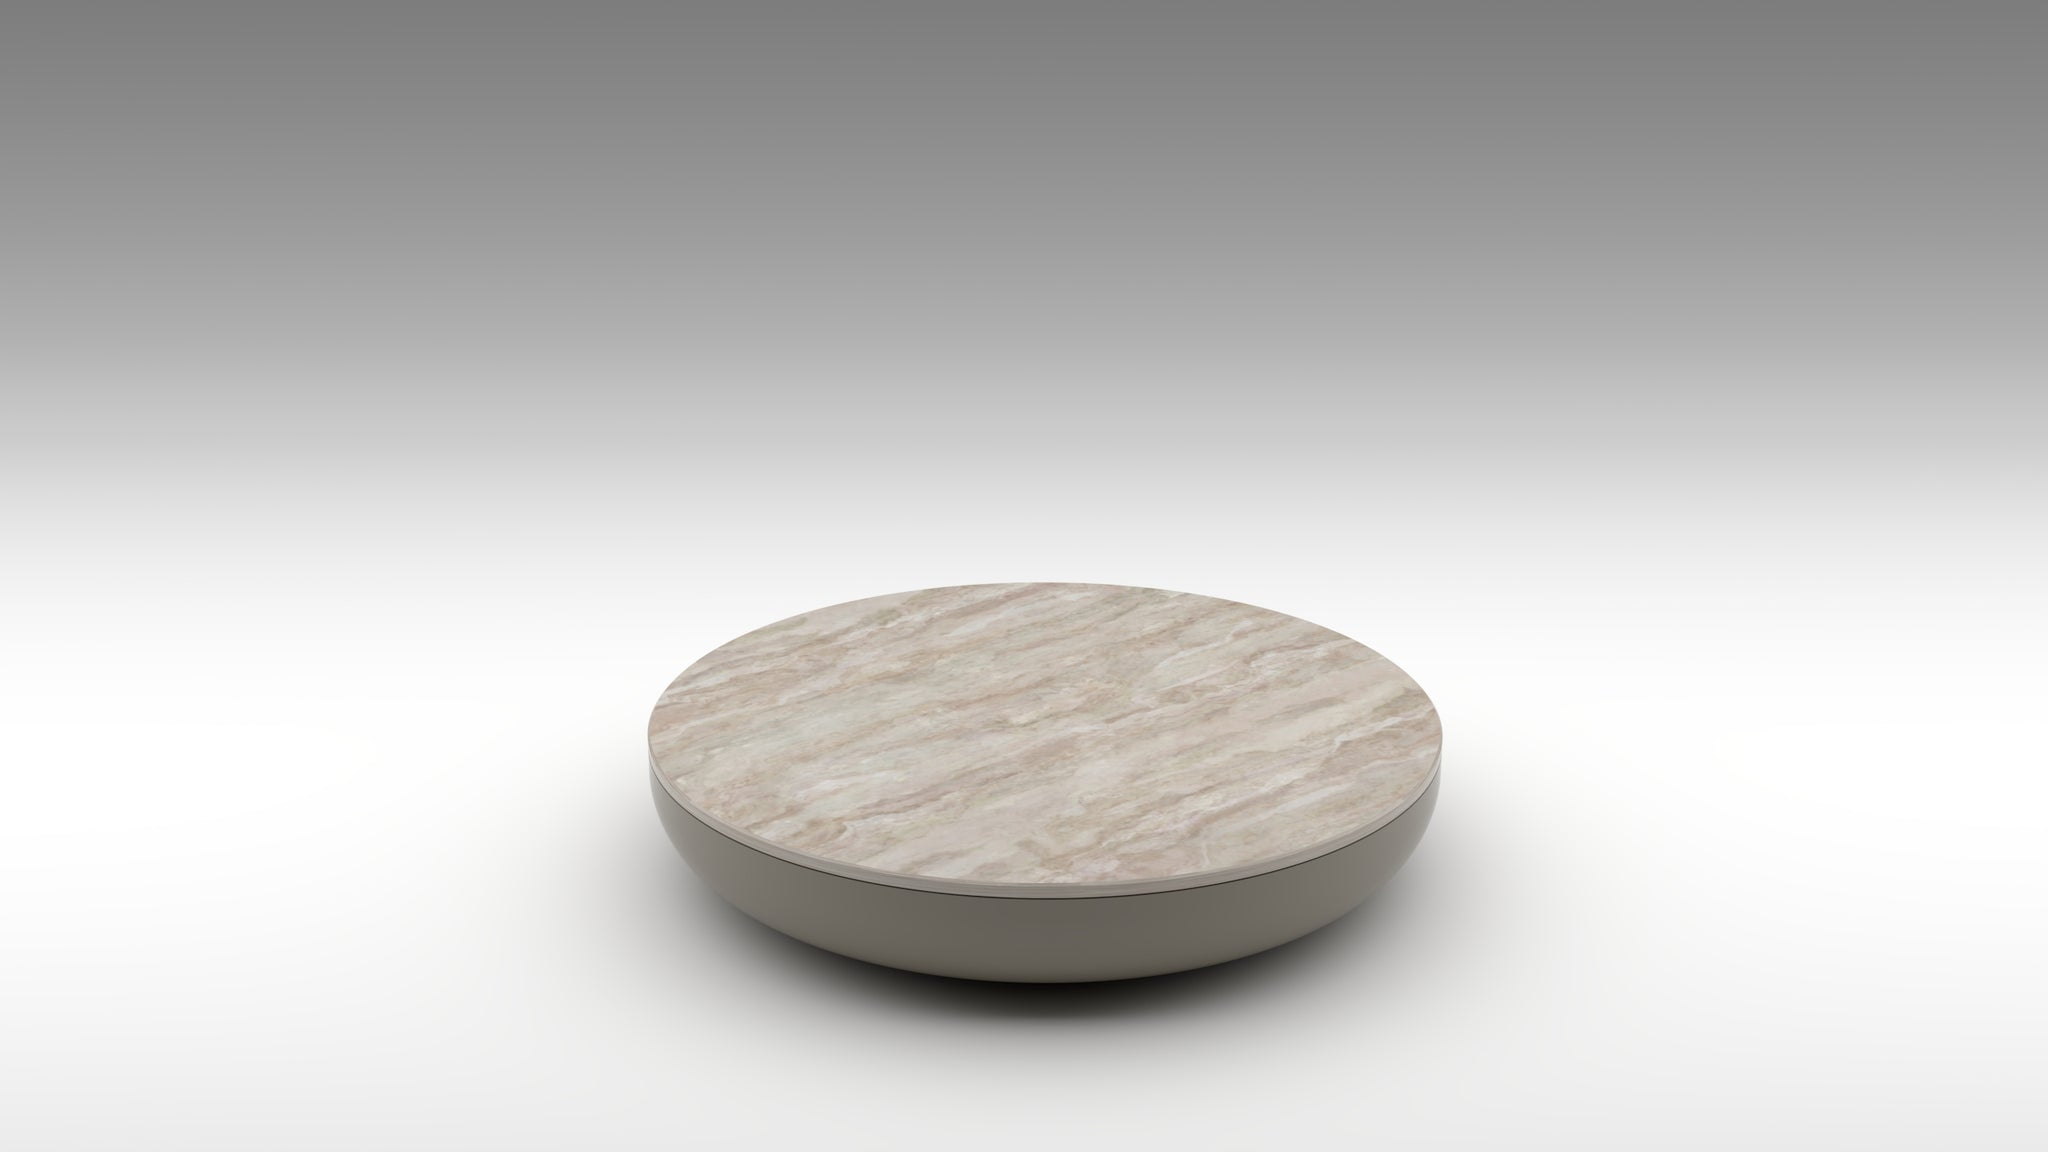 sawar marble, Toronto marble, manor sawar akar, akar coffee table, lacquer coffee table, Toronto marble top, beige marble, light beige marble coffee table, low table, marble coffee table,